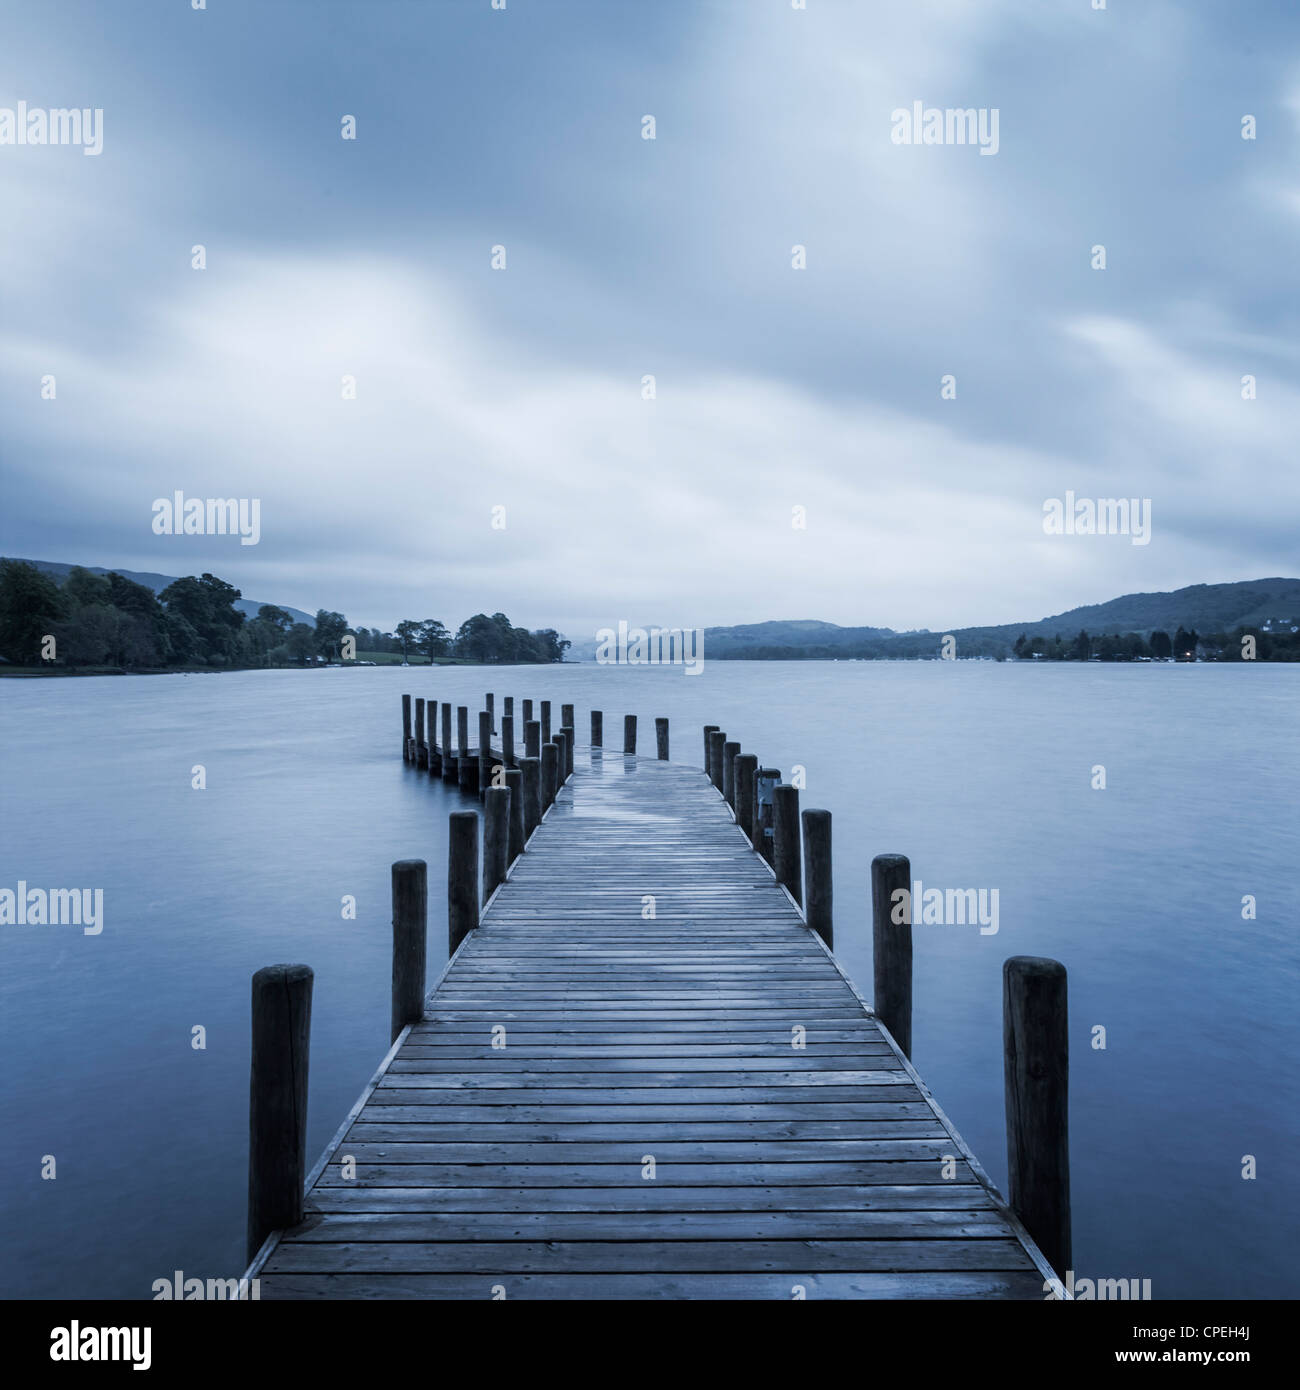 A stormy start to the day at Coniston Water in the English Lake District. Square format. - Stock Image